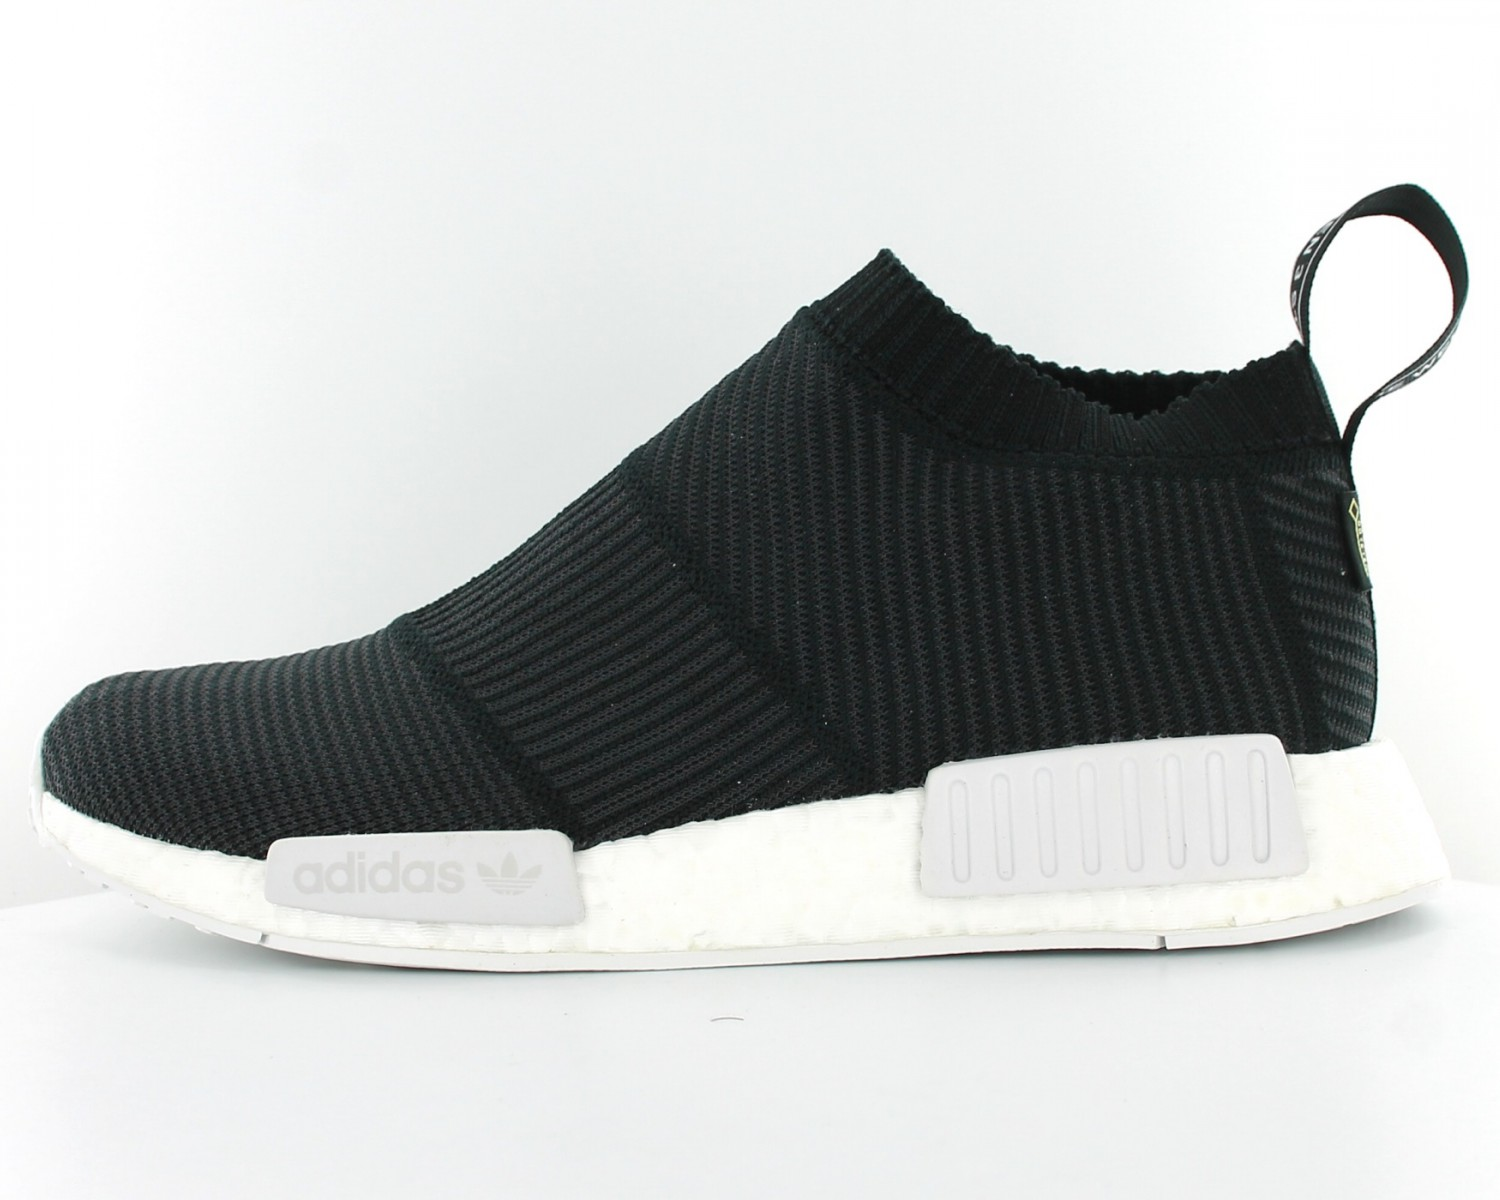 Adidas NMD CS1 Gore Tex PK Core-Black-Footwear-White ...